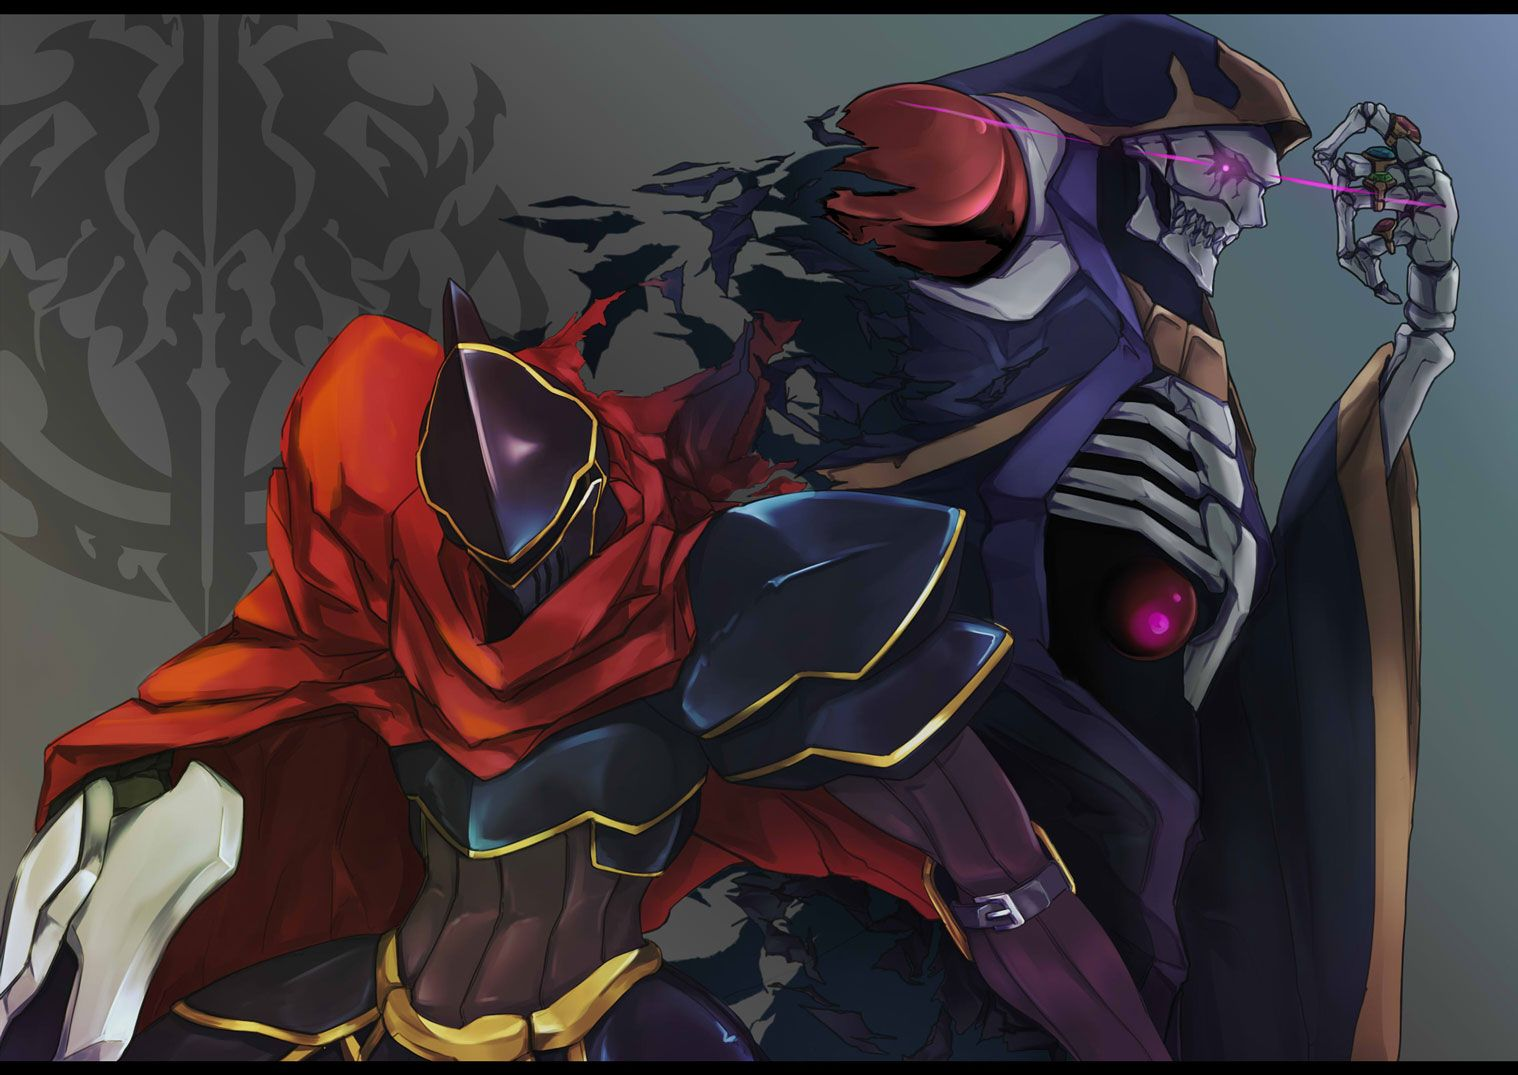 Anime Overlord Overlord Ainz Ooal Gown Wallpaper 1080p Overlord Wallpaper Hd 1545843 Hd Wallpaper Backgrounds Download